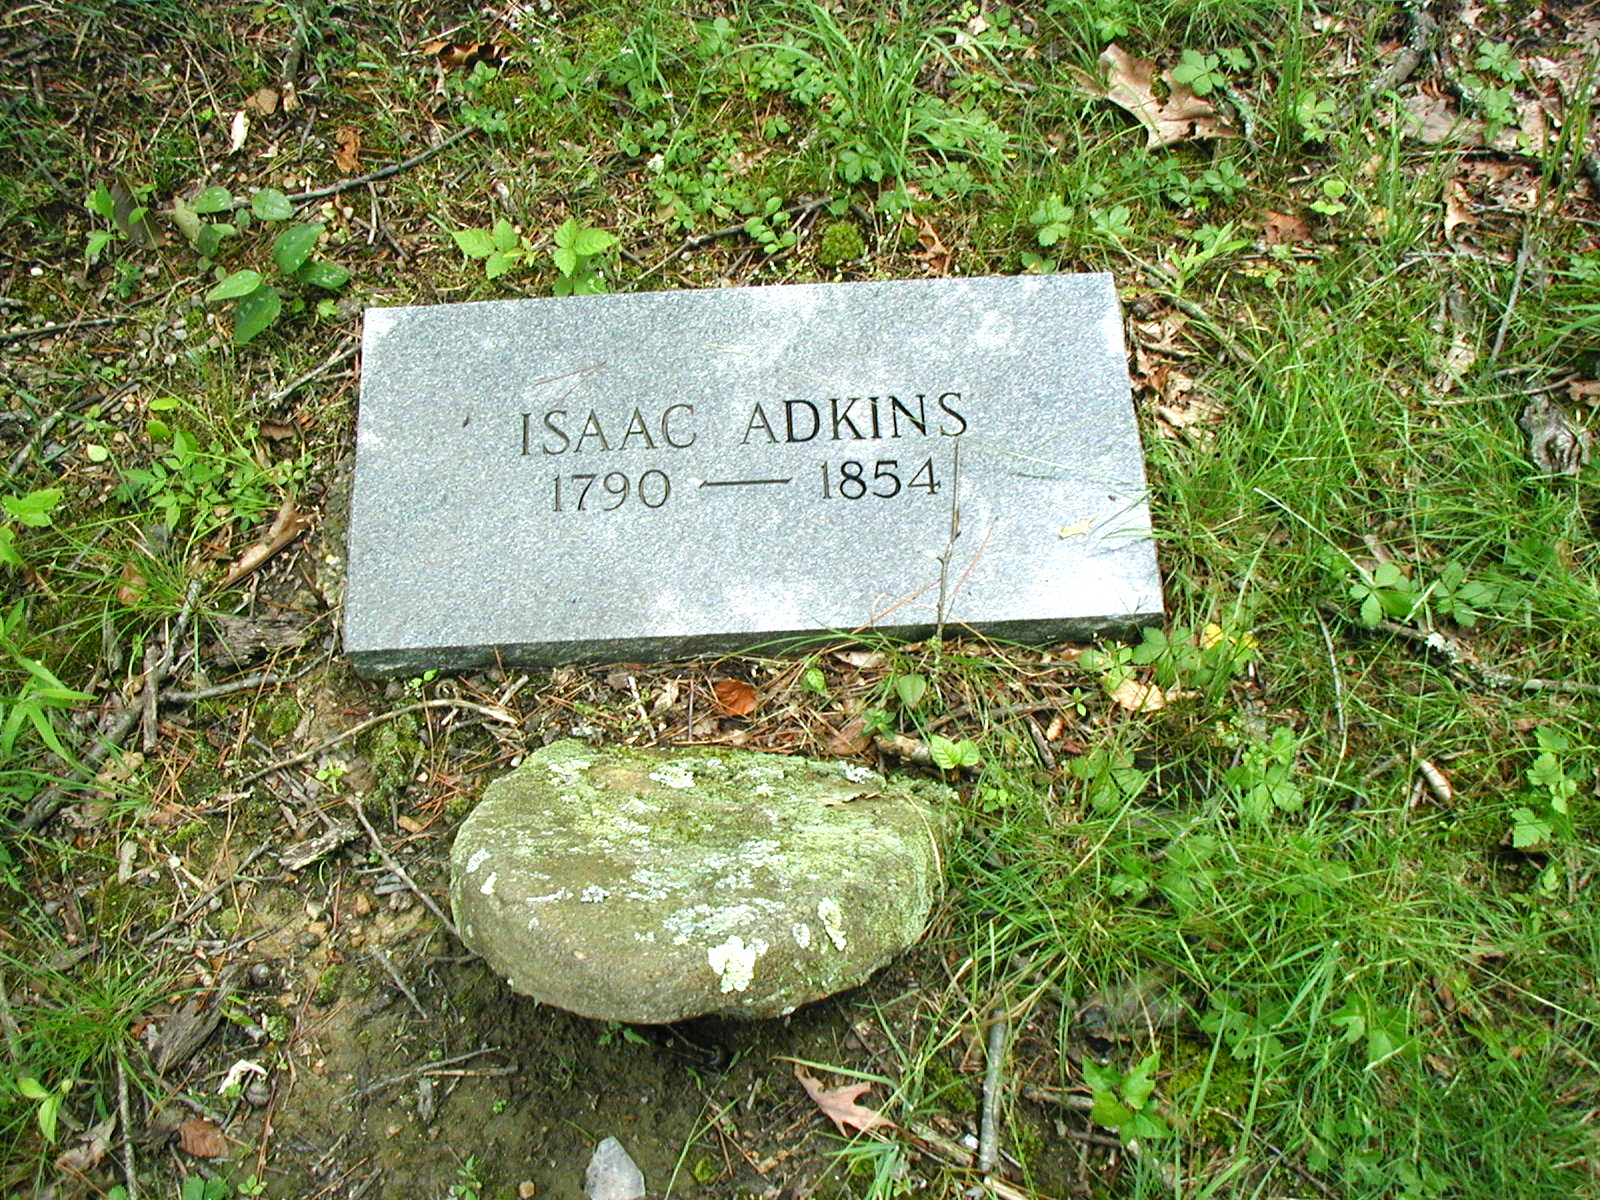 Isaac Adkins grave in the Adkins Family Cemetery at Harts, WV. Photo by Brandon Kirk.